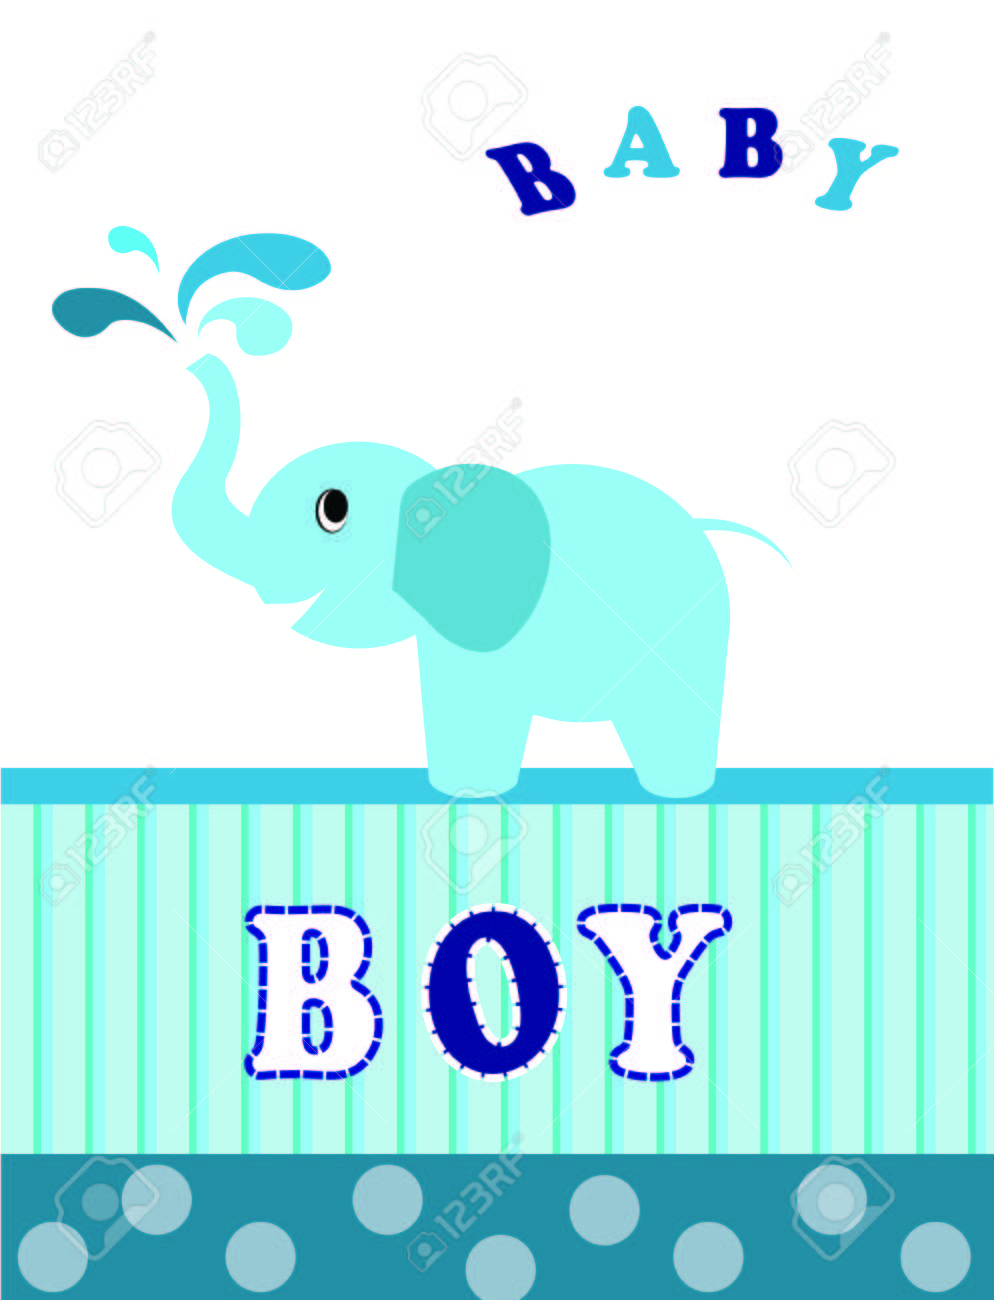 Baby Shower Invitation Card For Boy On A White Royalty Free Cliparts